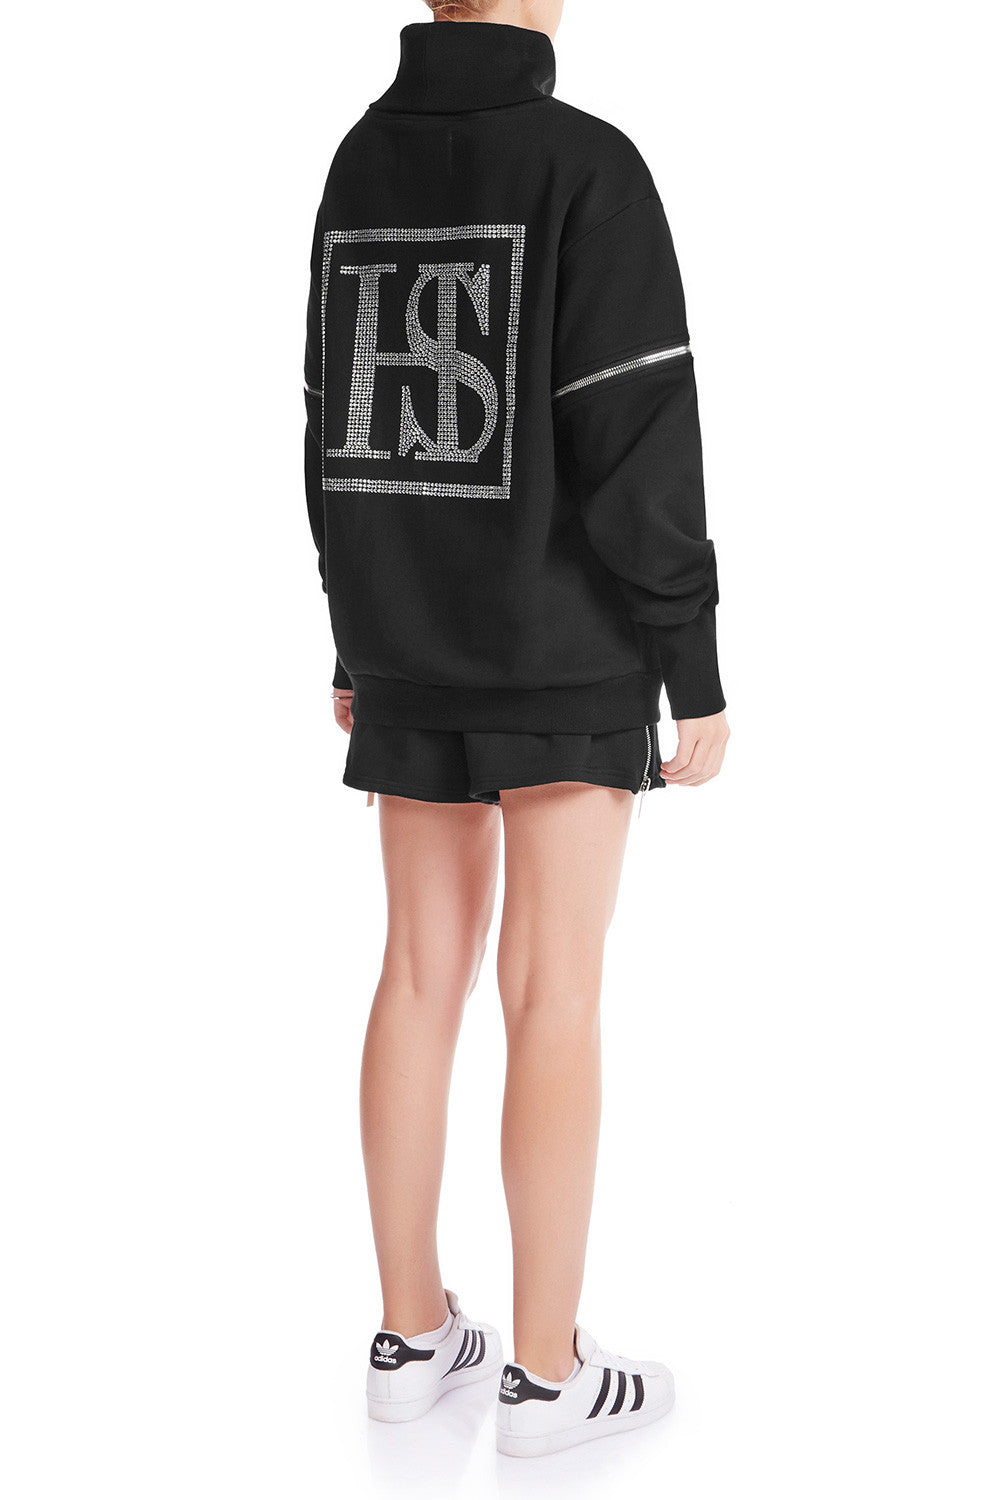 KRYSTALLE Statement Sweatshirt - BLK | HAUS OF SONG